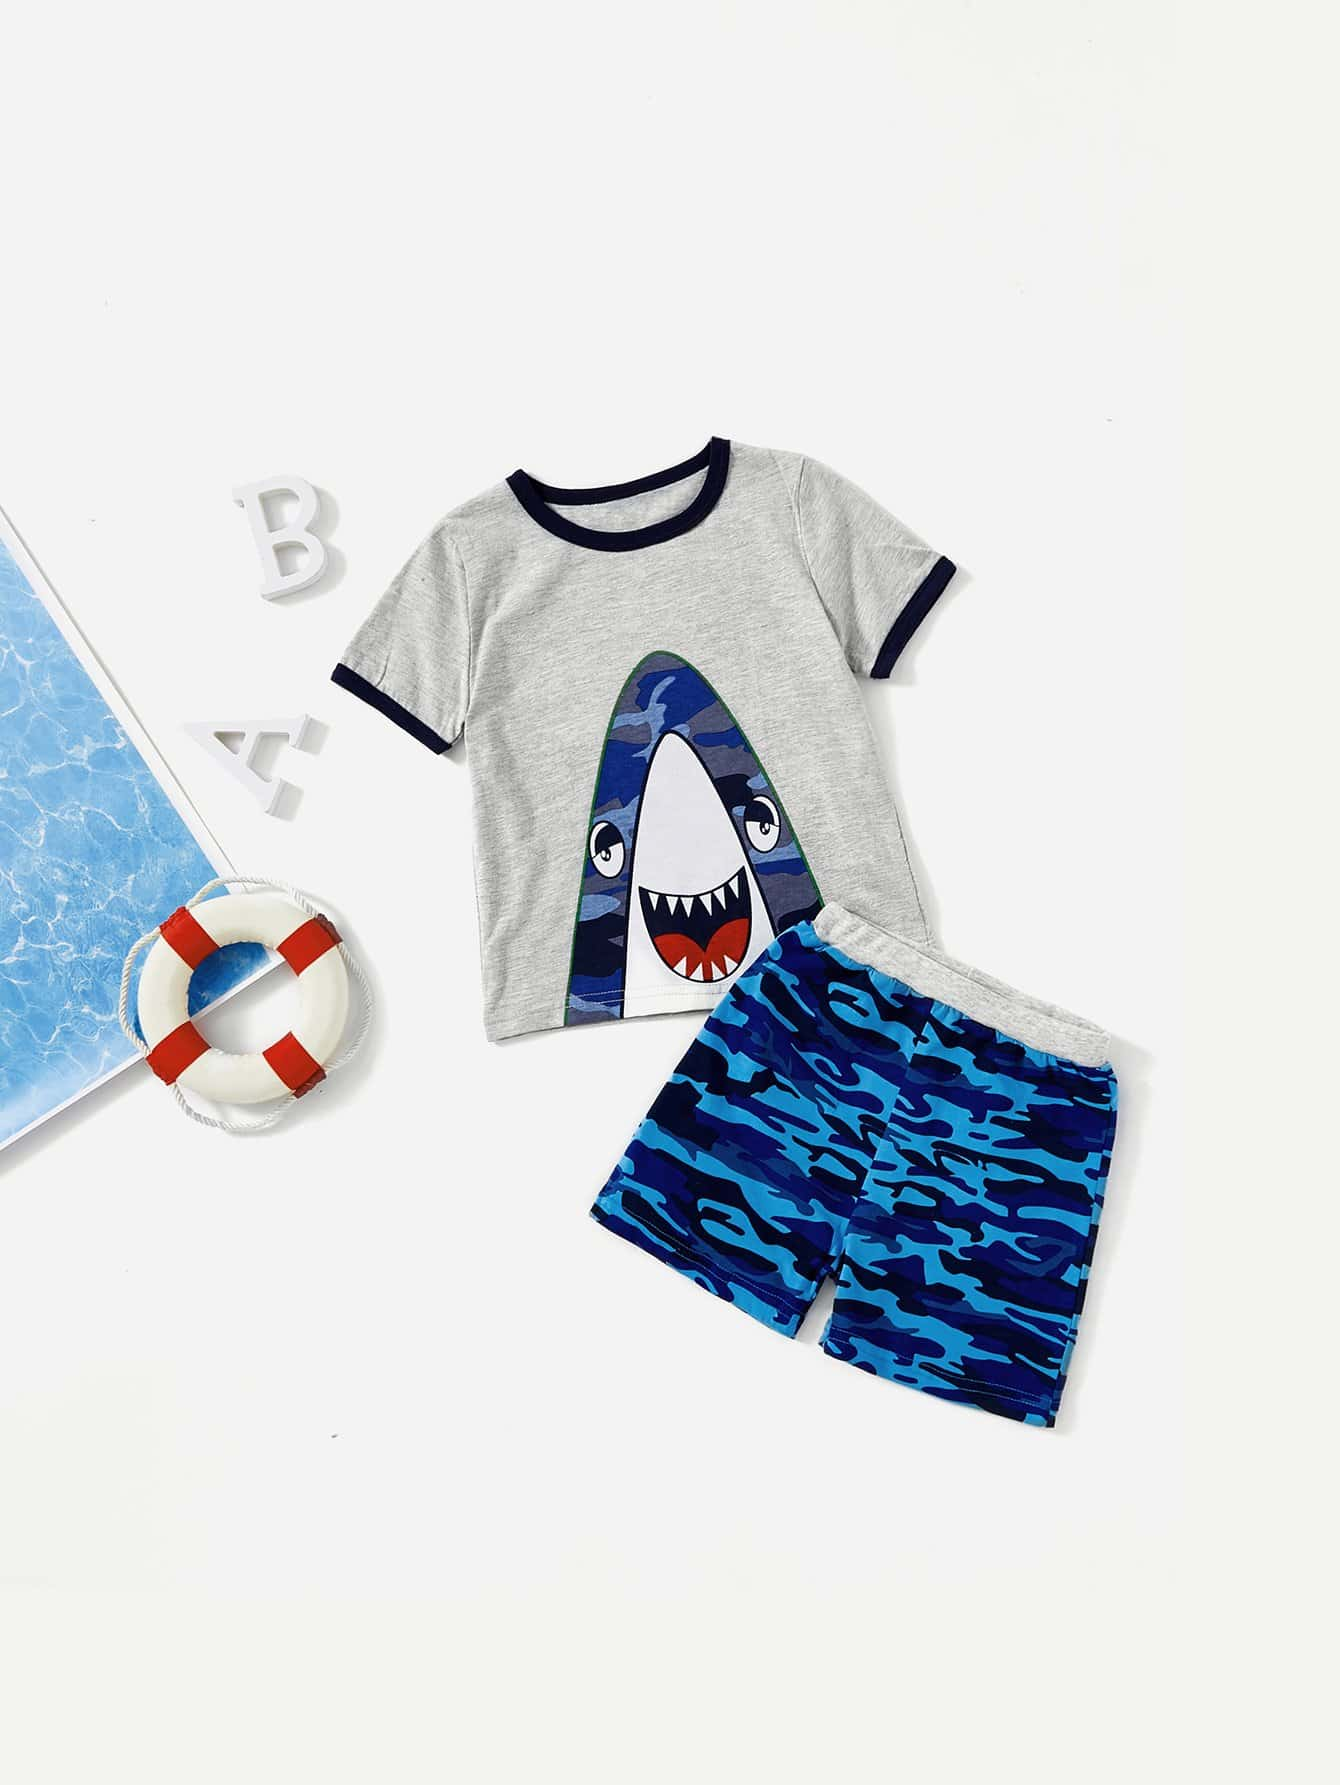 Kids Shark Print Ringer Tee With Camo Shorts kids graphic printed tee with shorts